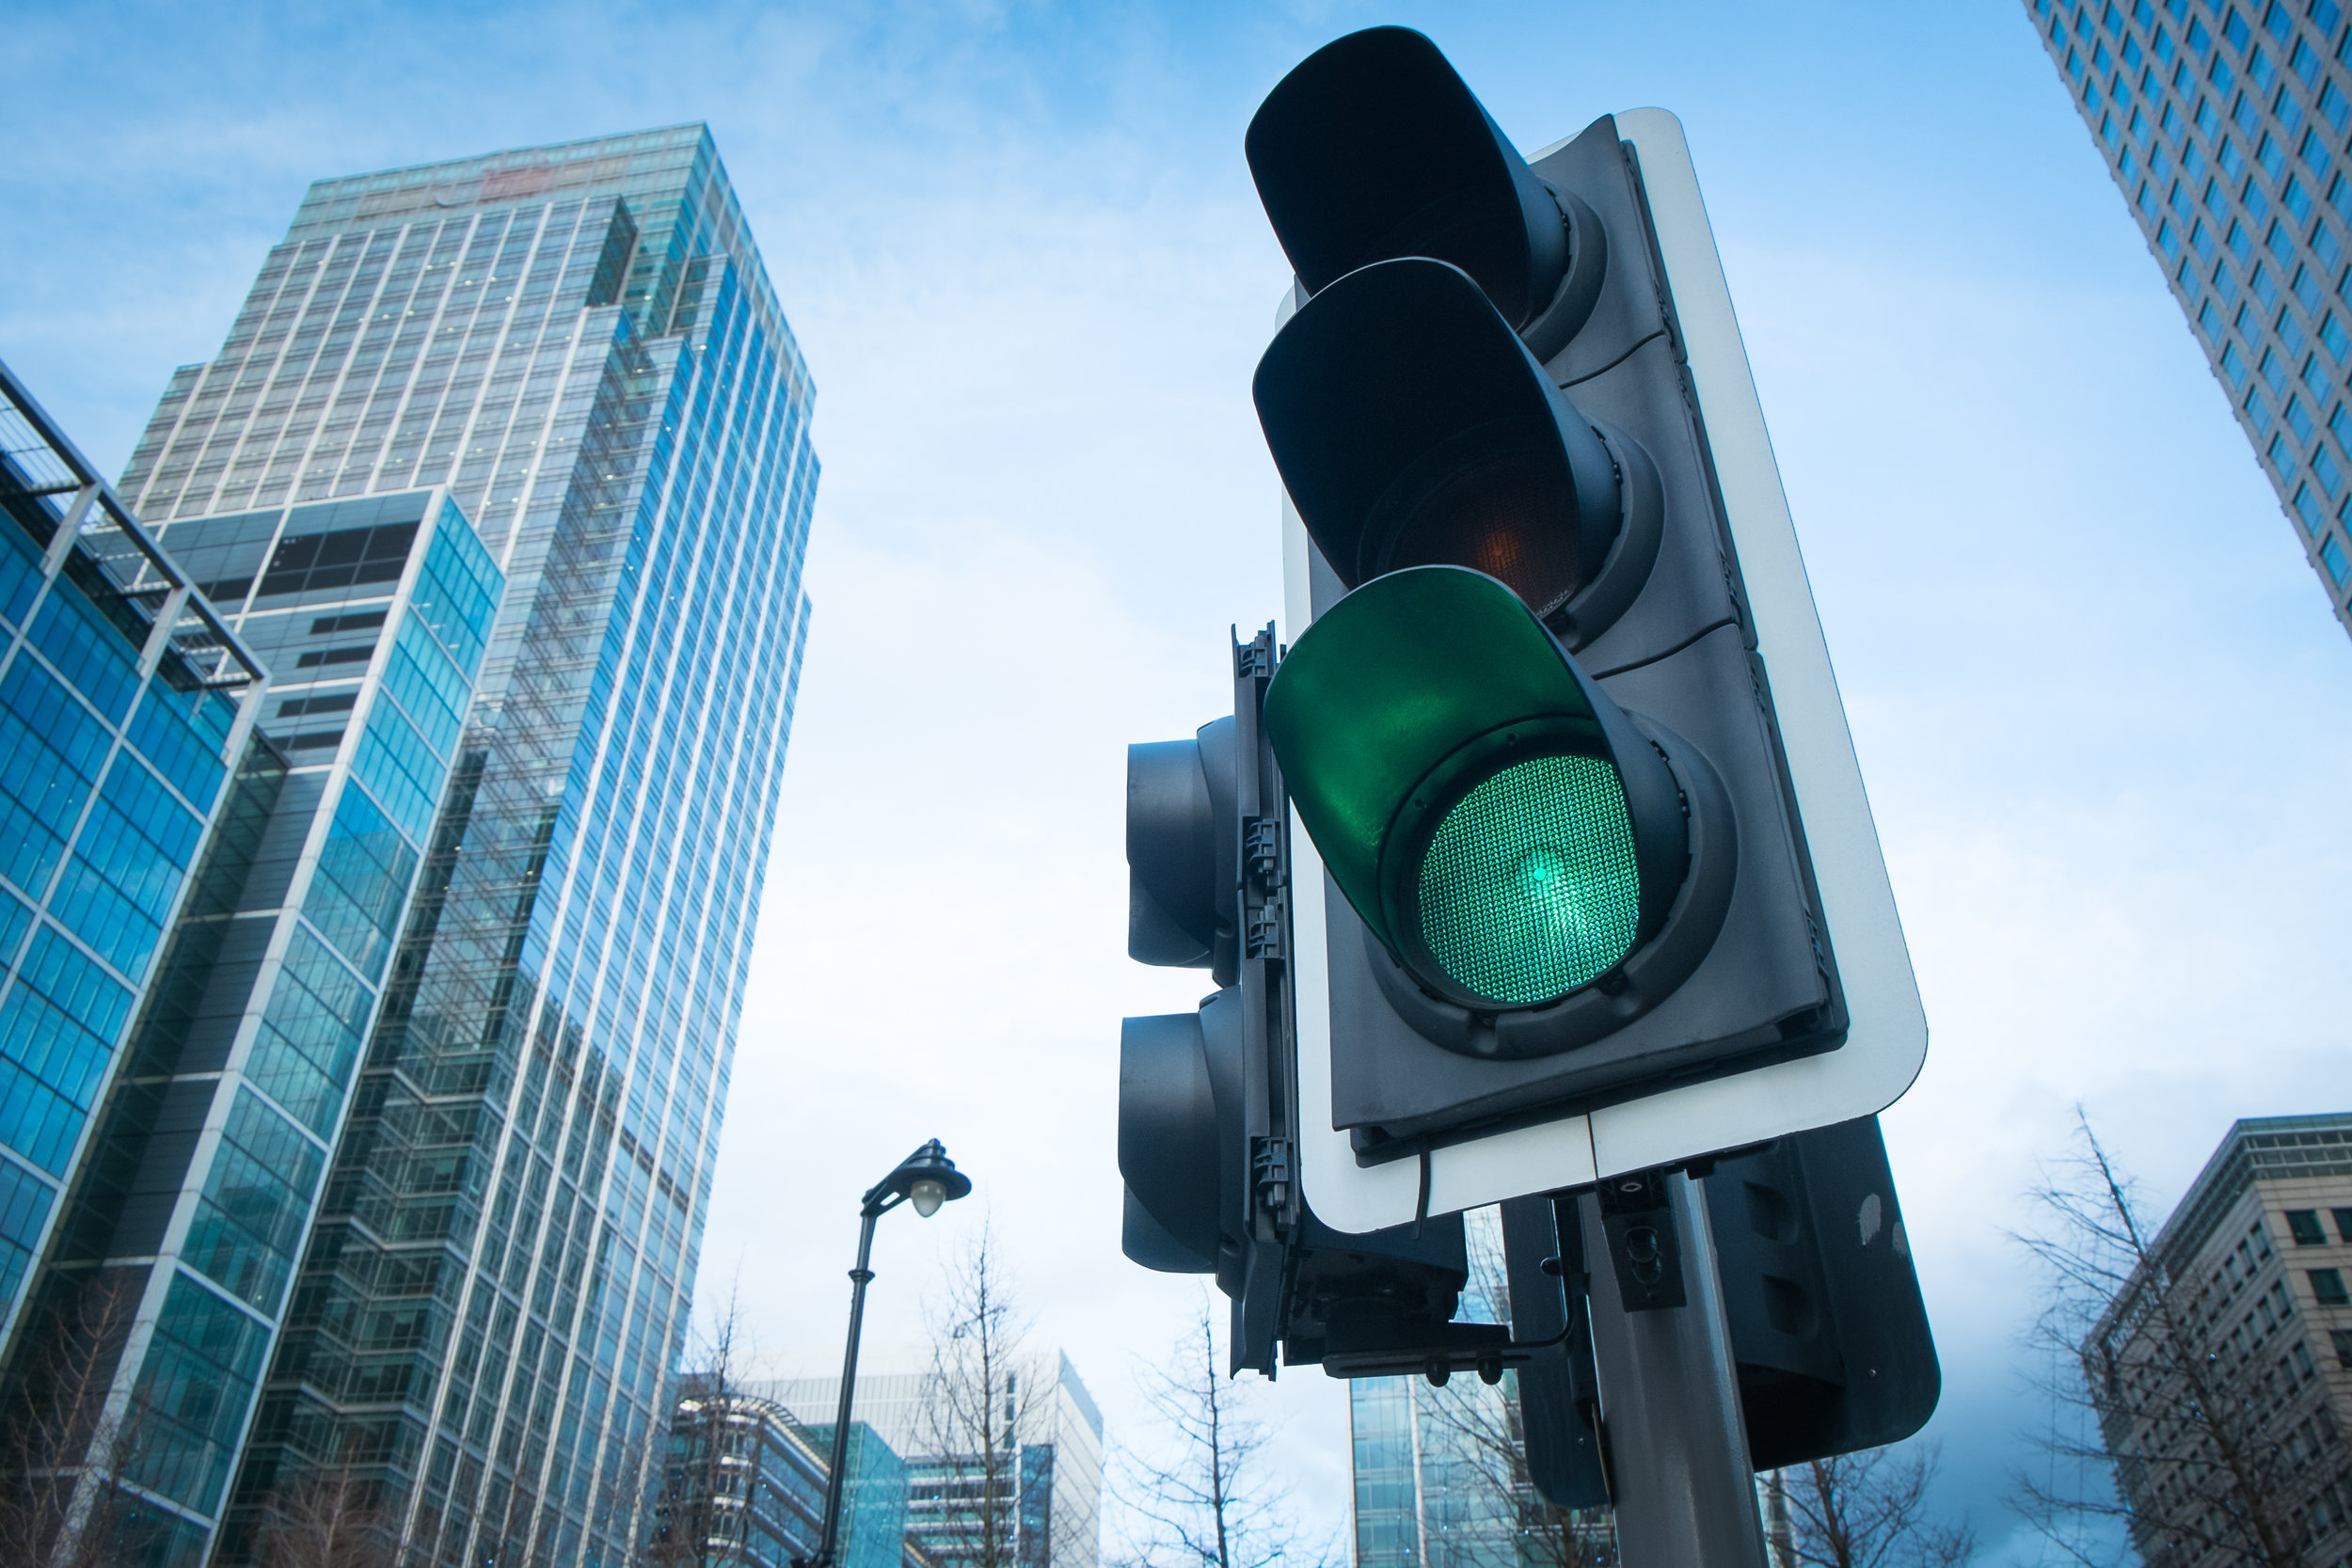 Electrical decommissioning, connections and upgrades for traffic lights throughout Western Australia